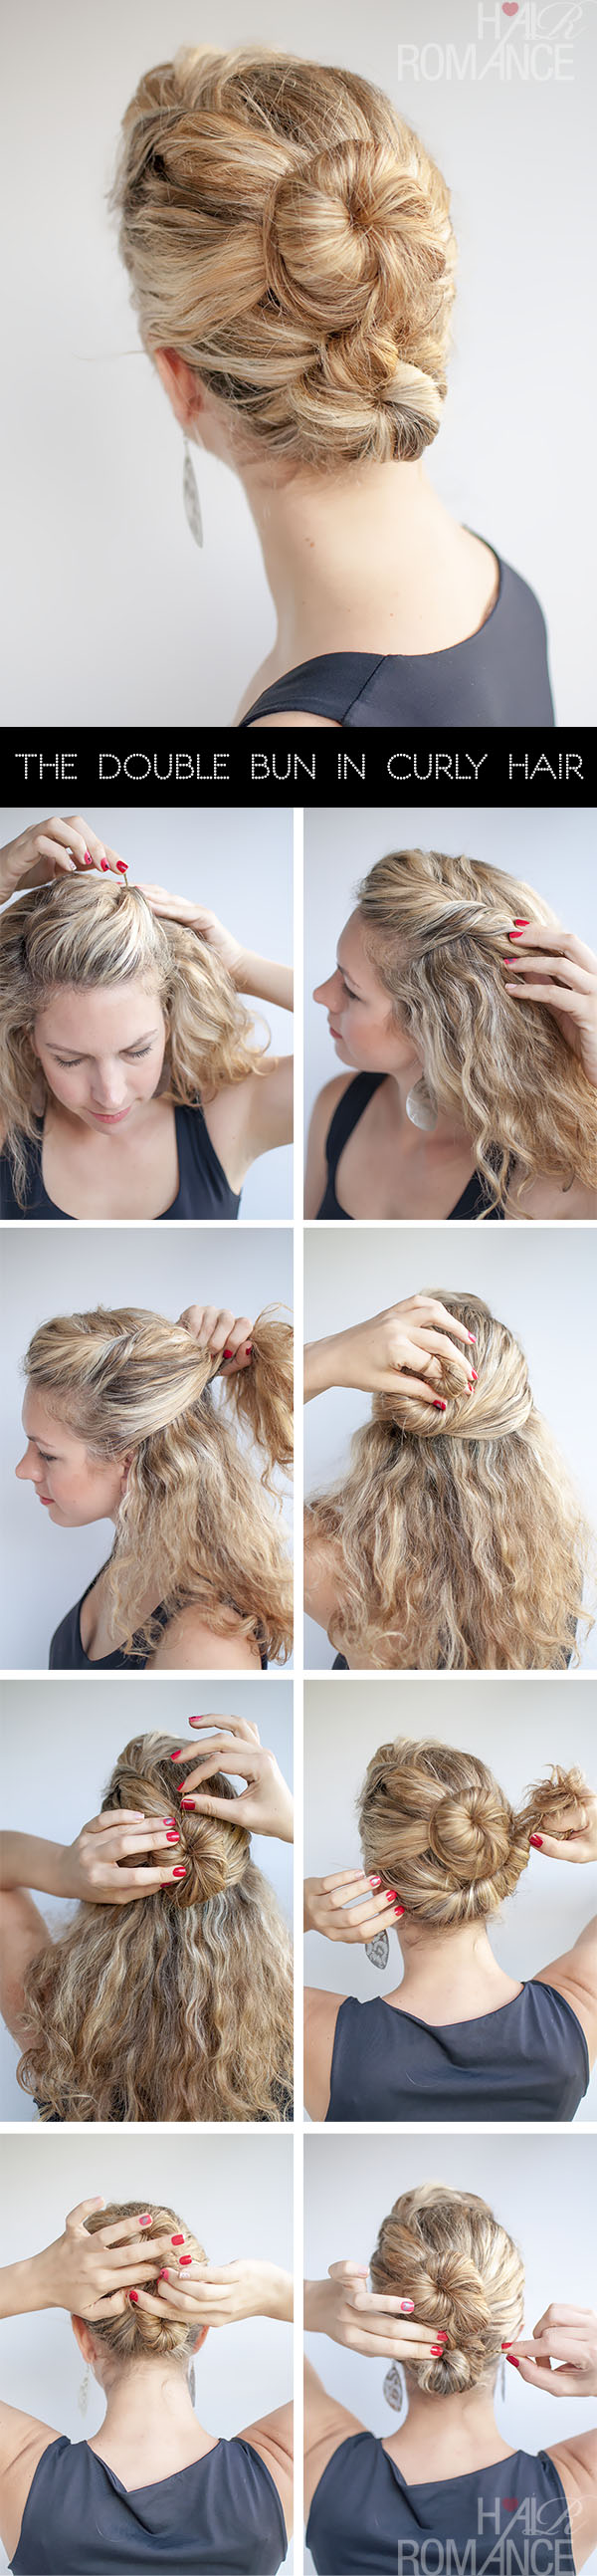 Hair Romance - The Double Bun Hair Tutorial in curly hair